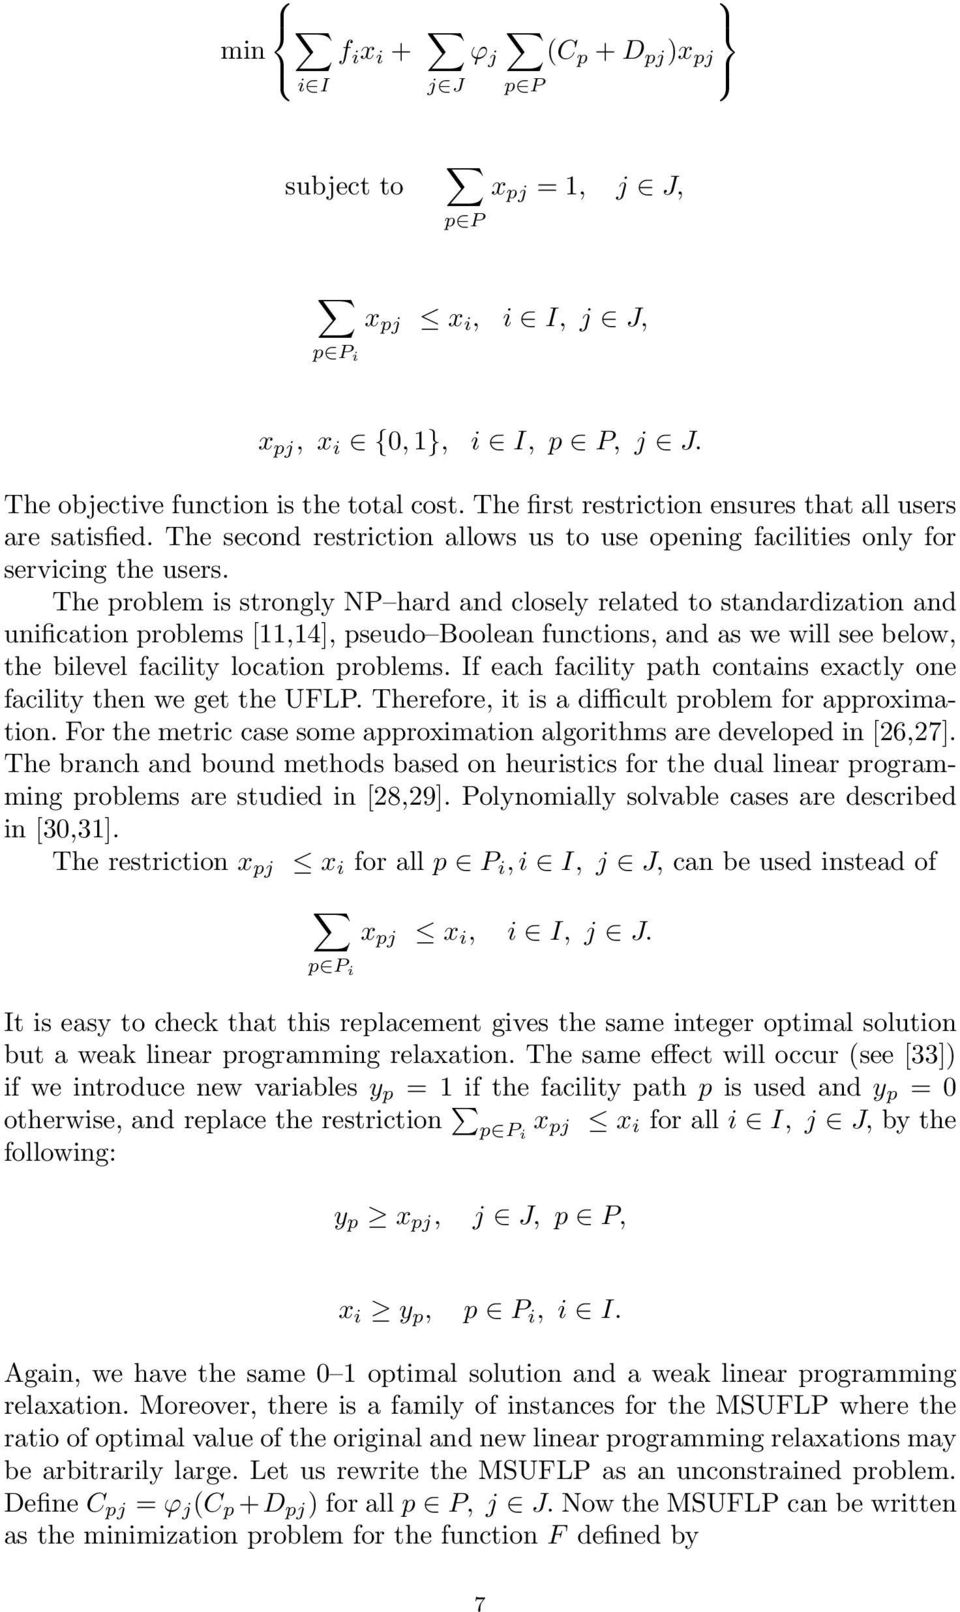 The problem is strongly NP hard and closely related to standardization and unification problems [11,14], pseudo Boolean functions, and as we will see below, the bilevel facility location problems.